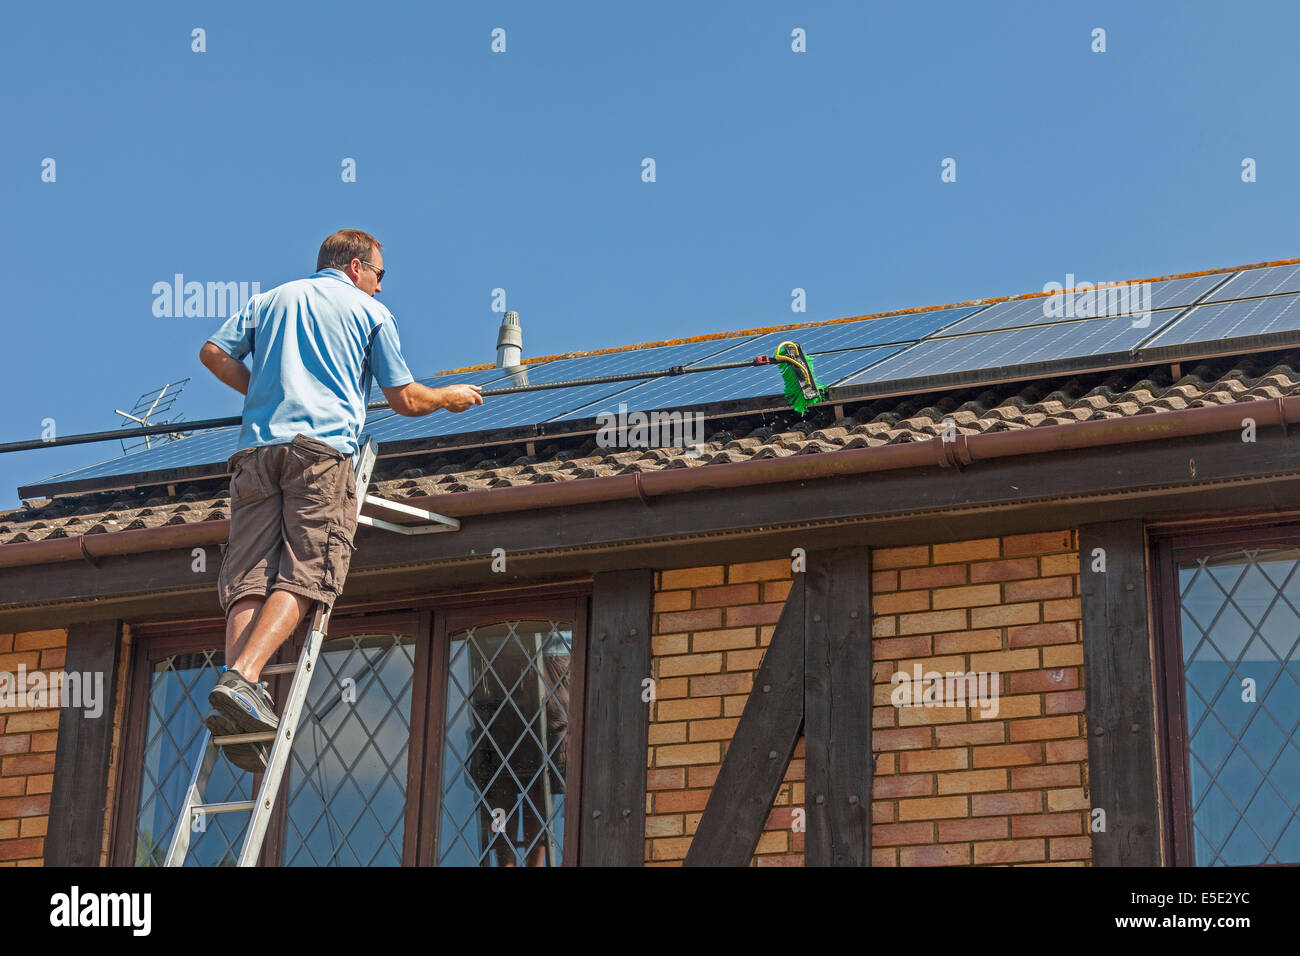 Cleaning accumulated dirt, grime and bird droppings from rooftop Photovoltaic (PV) solar panels. JMH6245 - Stock Image